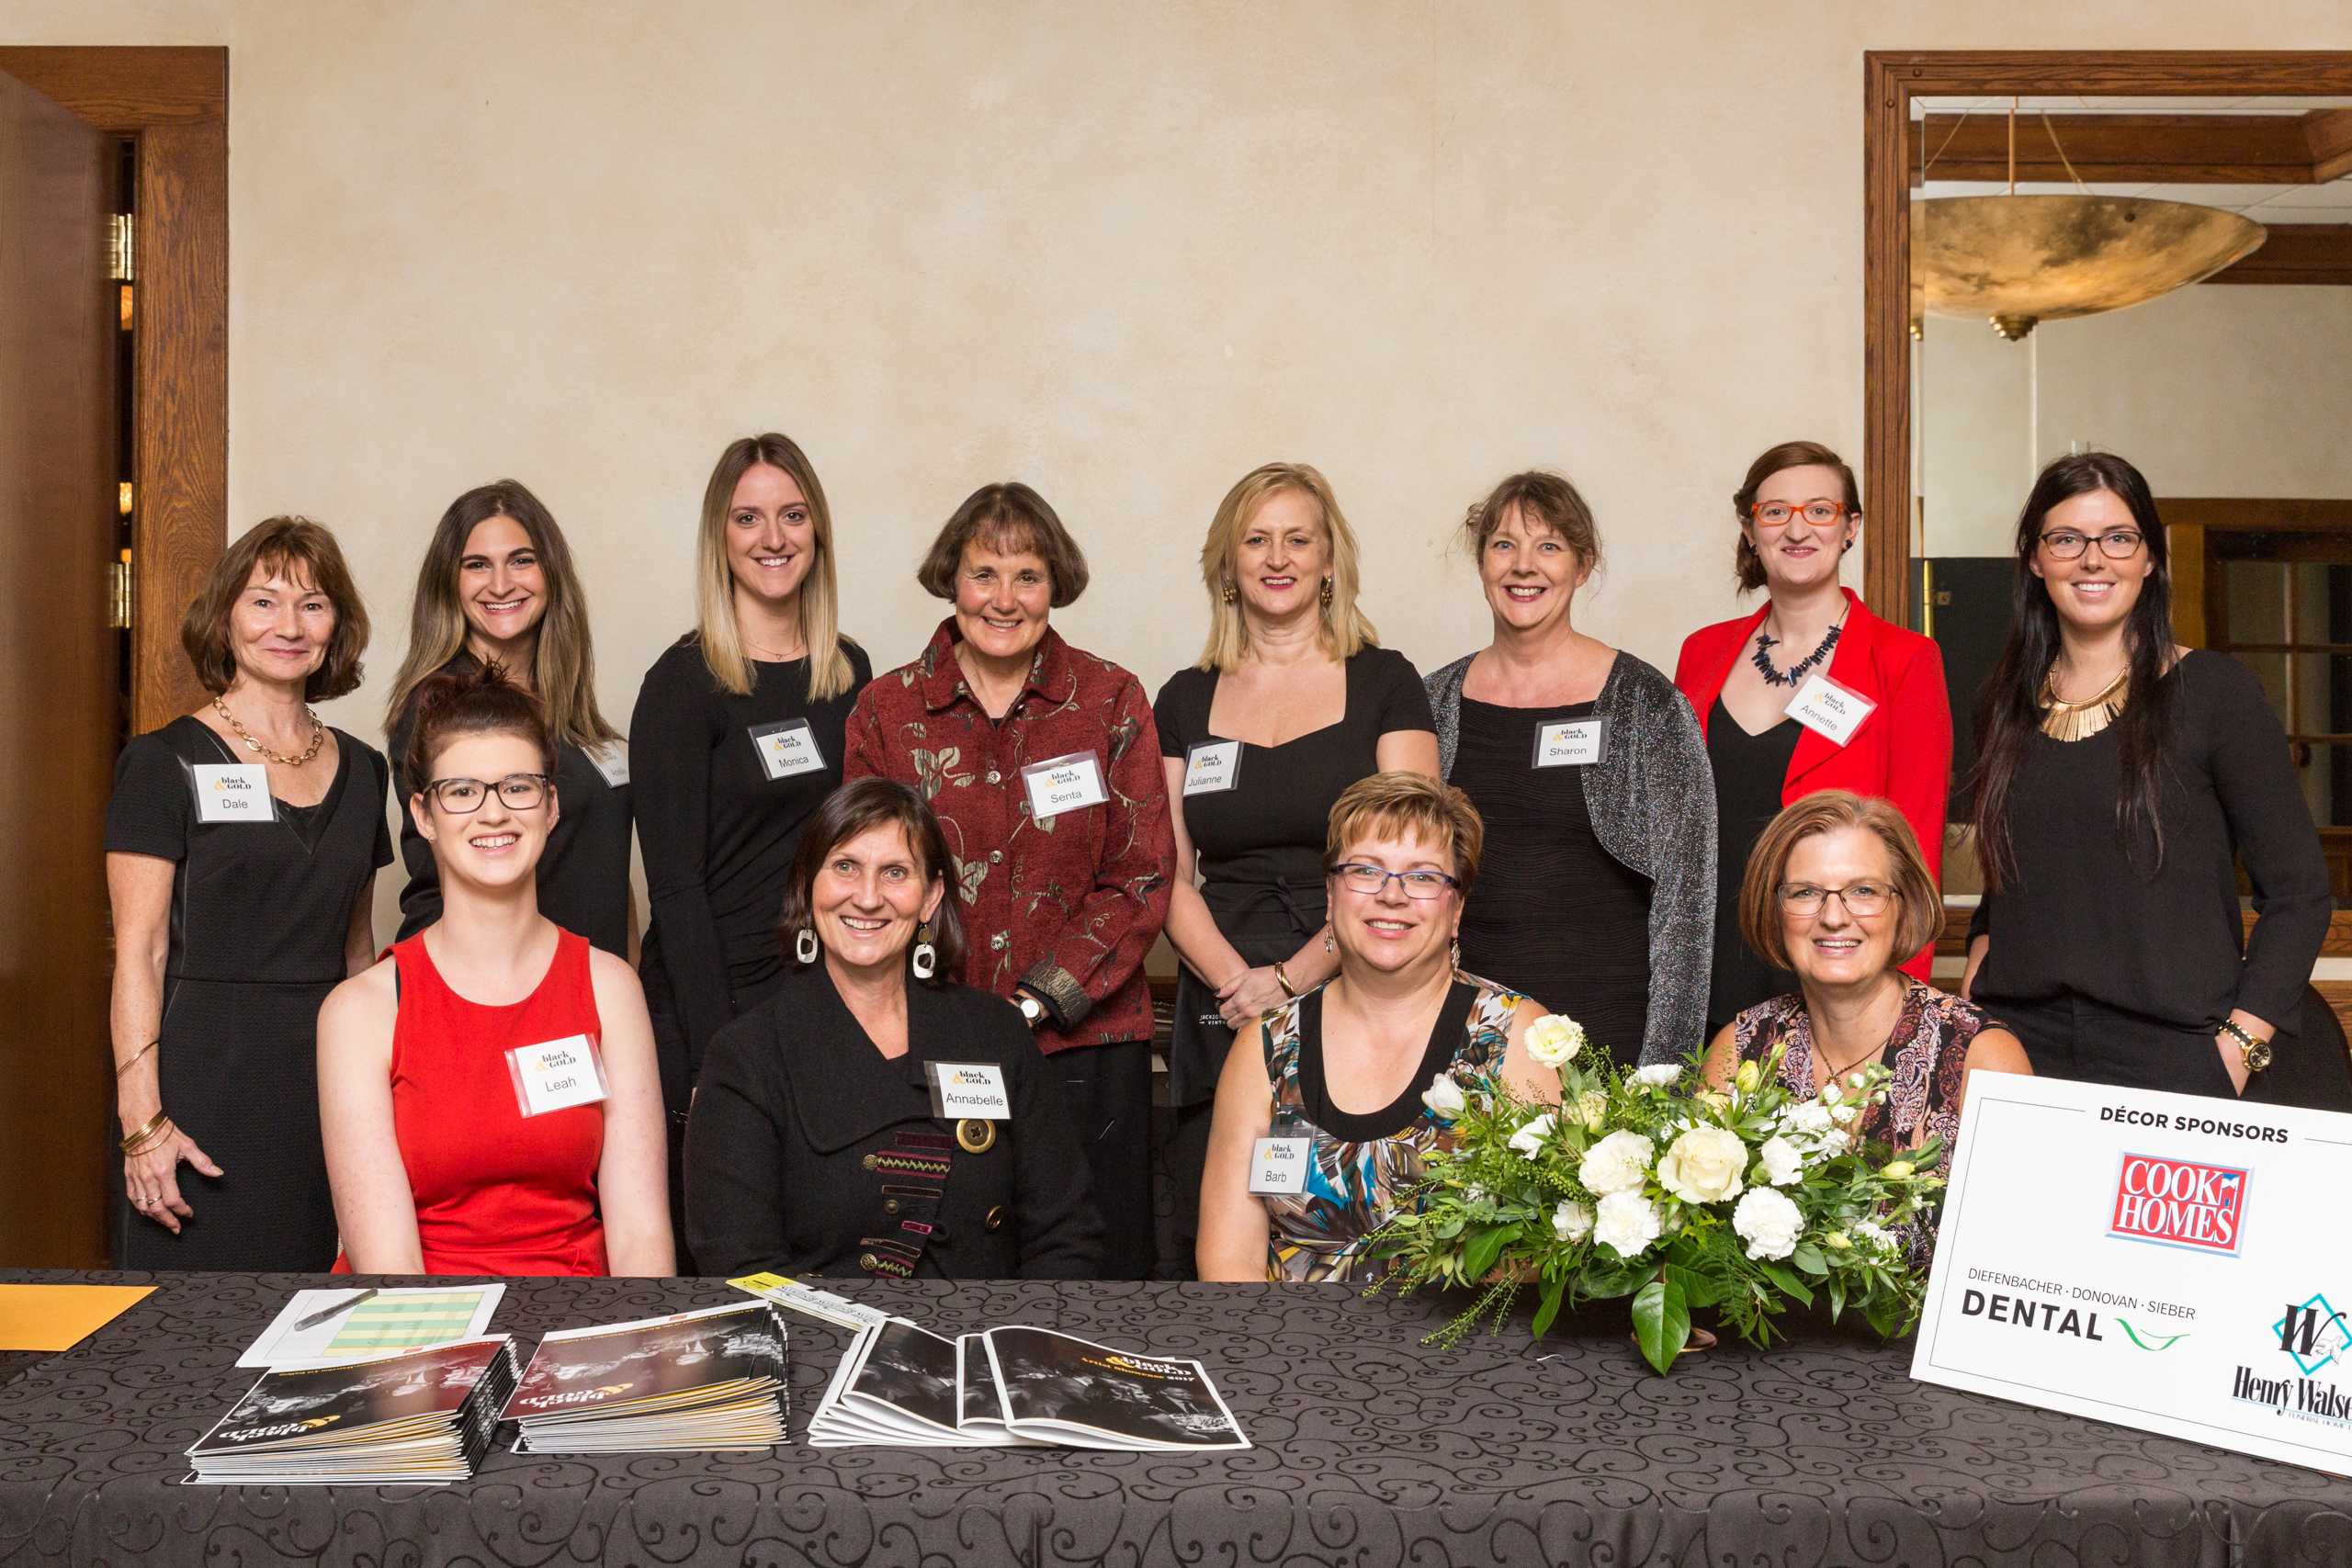 Group photo of KWAG Volunteers at the reception desk of the Black & Gold fundraiser